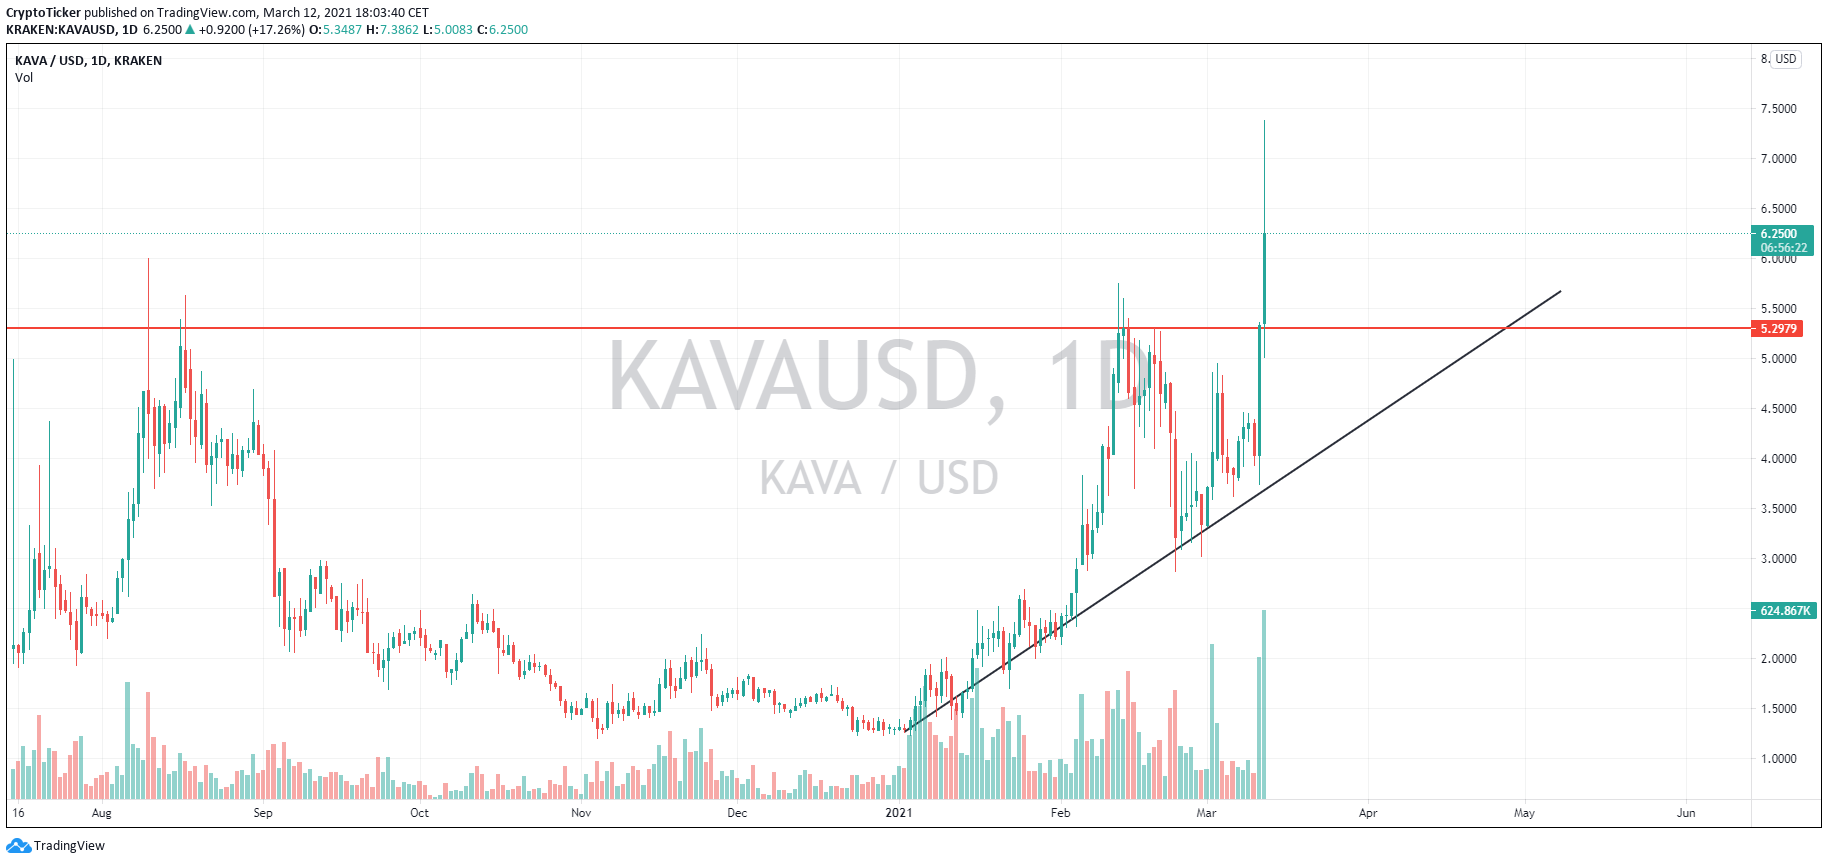 KAVA/USD 1-day chart showing KAVA price break the ascending triangle formation